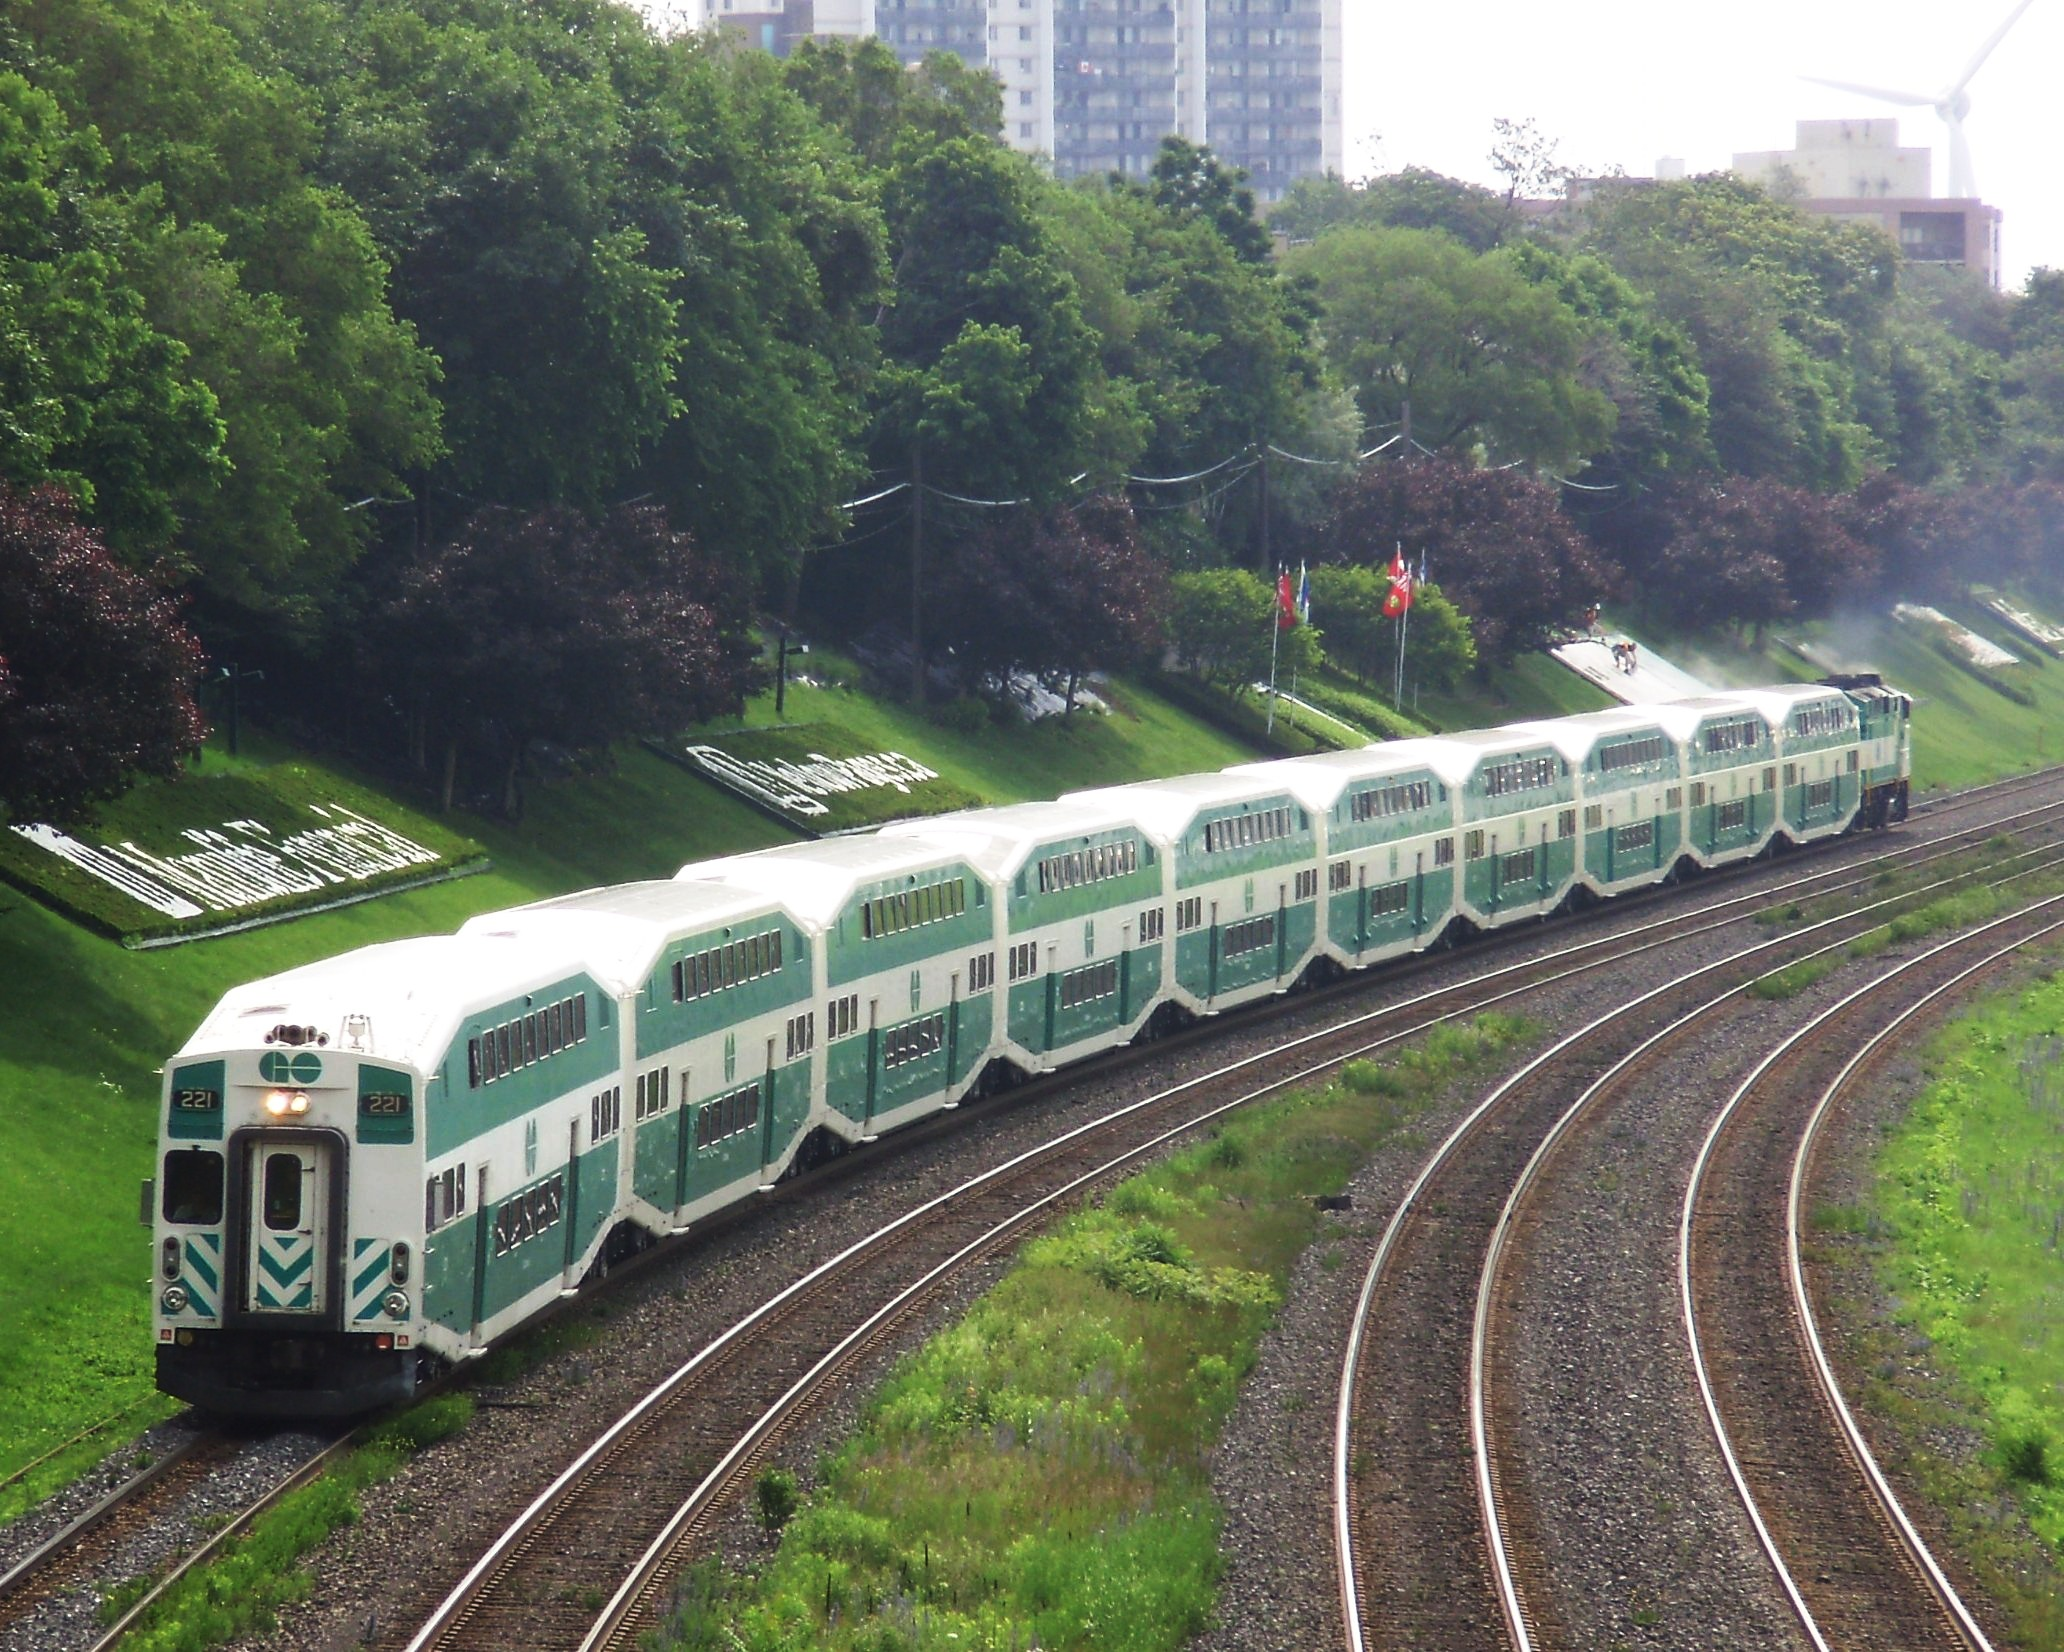 https://upload.wikimedia.org/wikipedia/commons/5/50/Lakeshore_West_GO_Train_Westbound.jpg